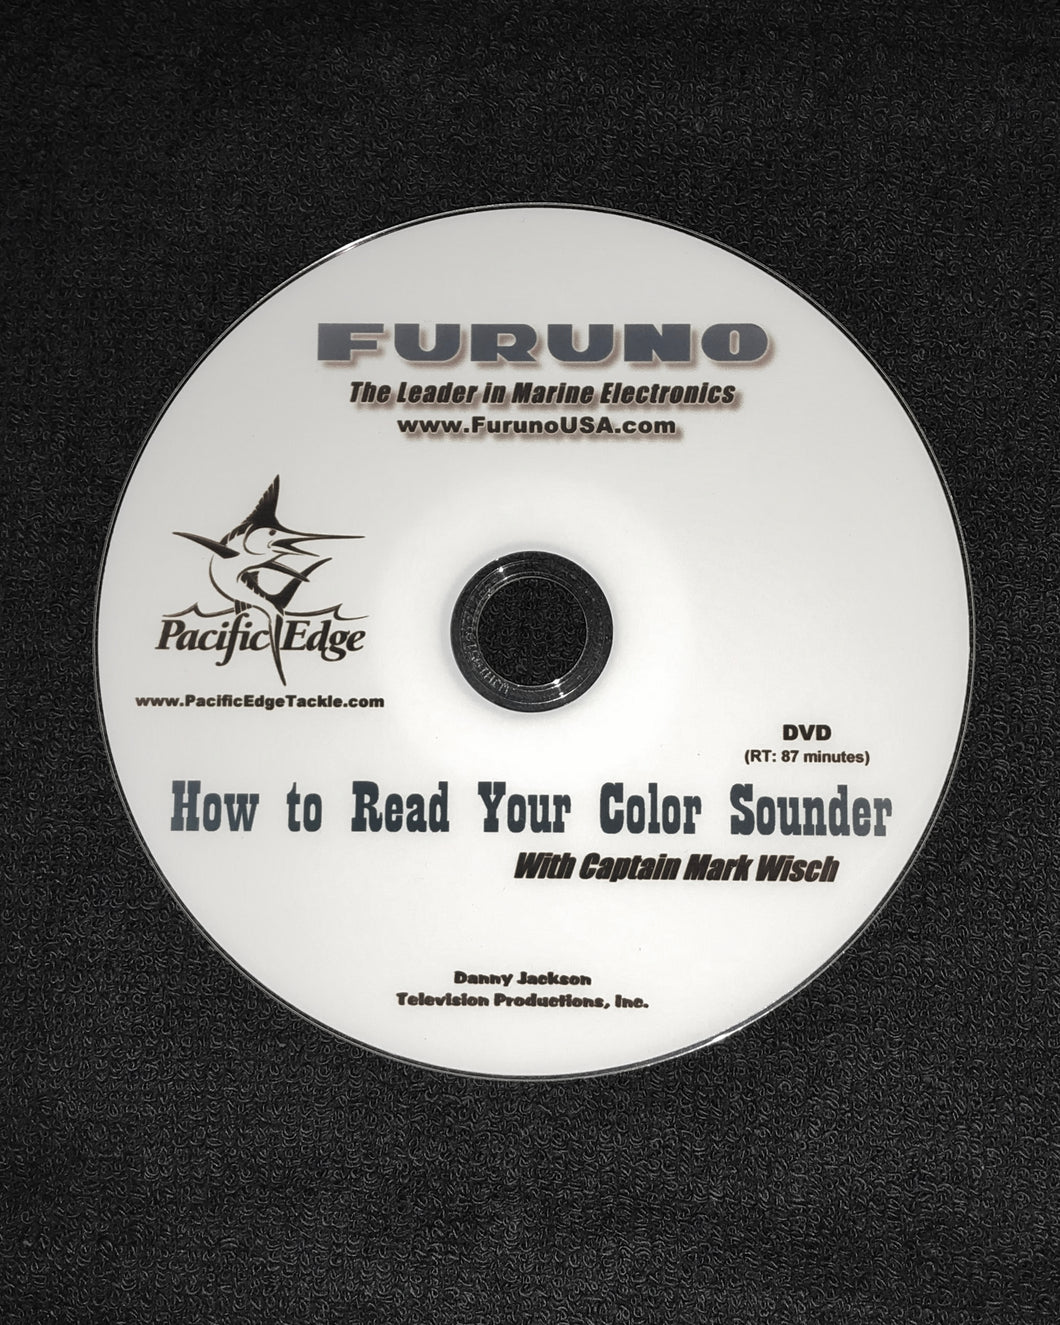 How to Read Your Color Sounder